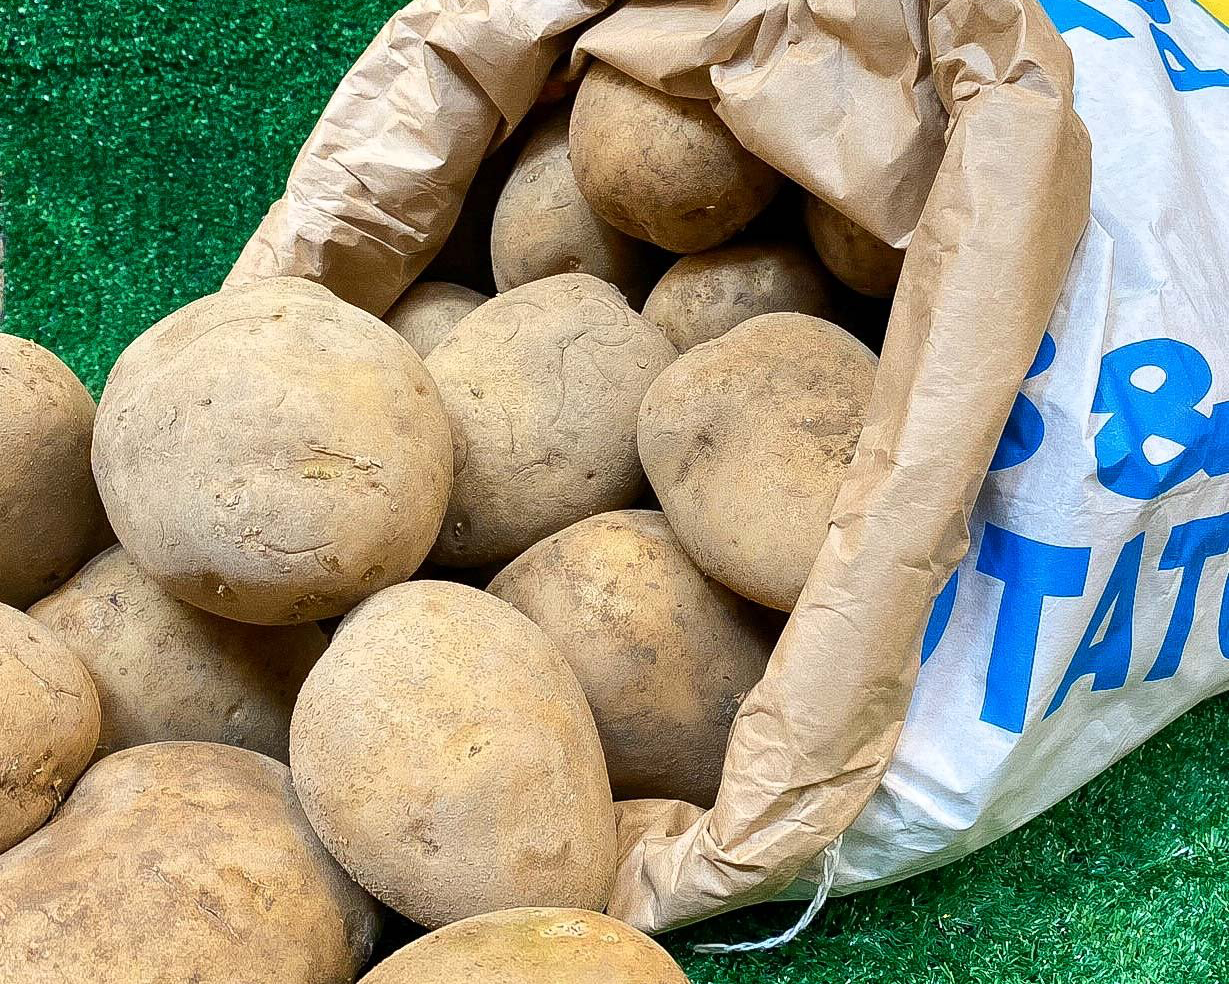 Hector Hall: Sack of  Potatoes (25Kg)